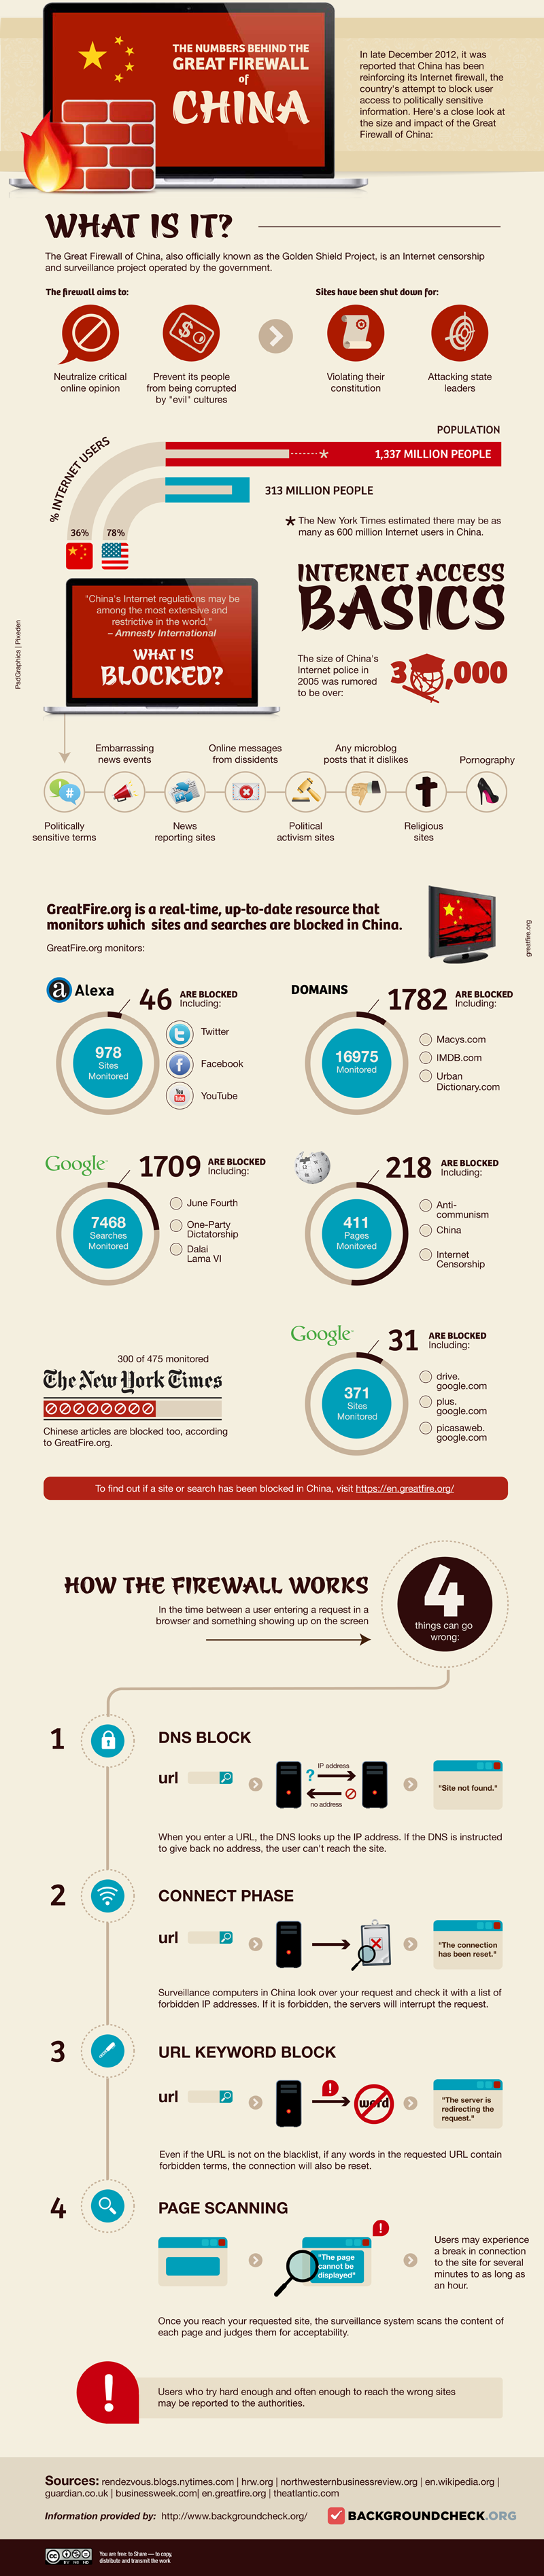 How The Great Firewall Of China Works Infographic